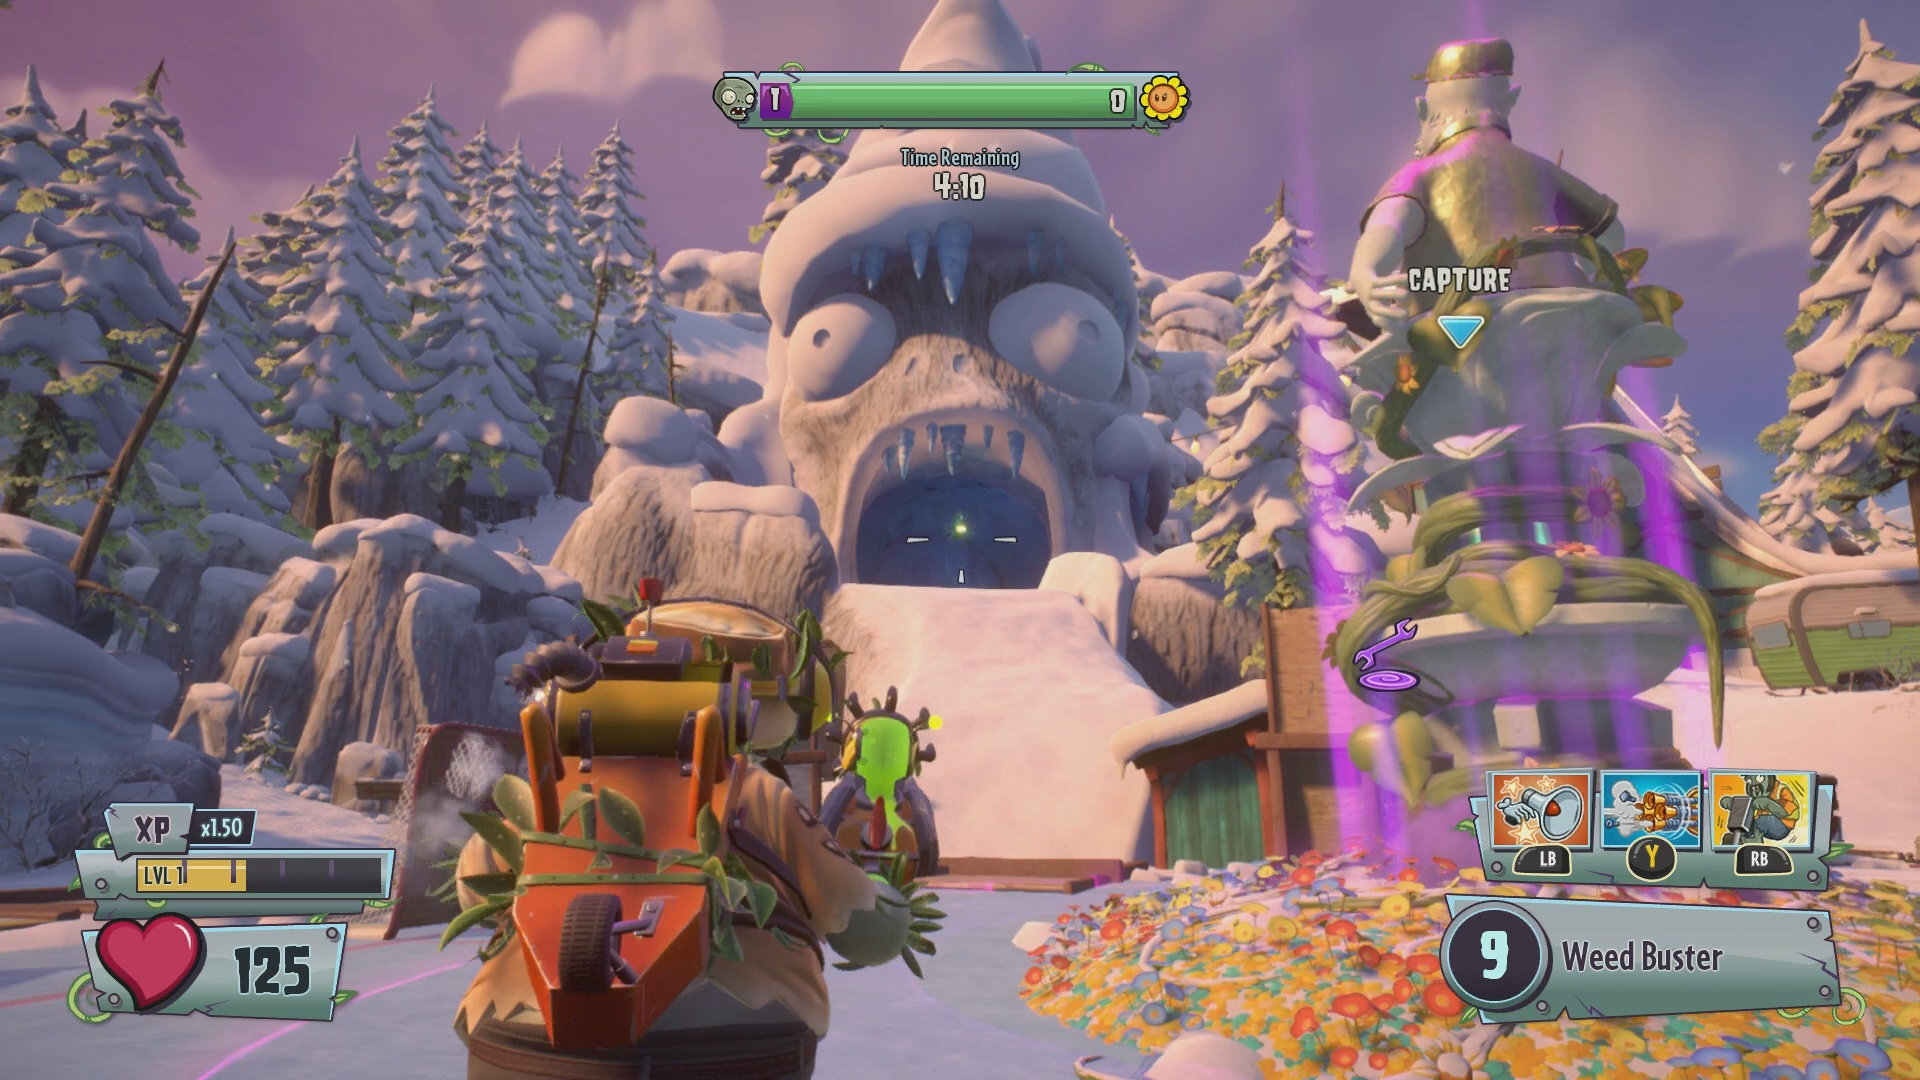 ... View A Larger Version Of Plants Vs. Zombies: Garden Warfare 2 3/6 ...